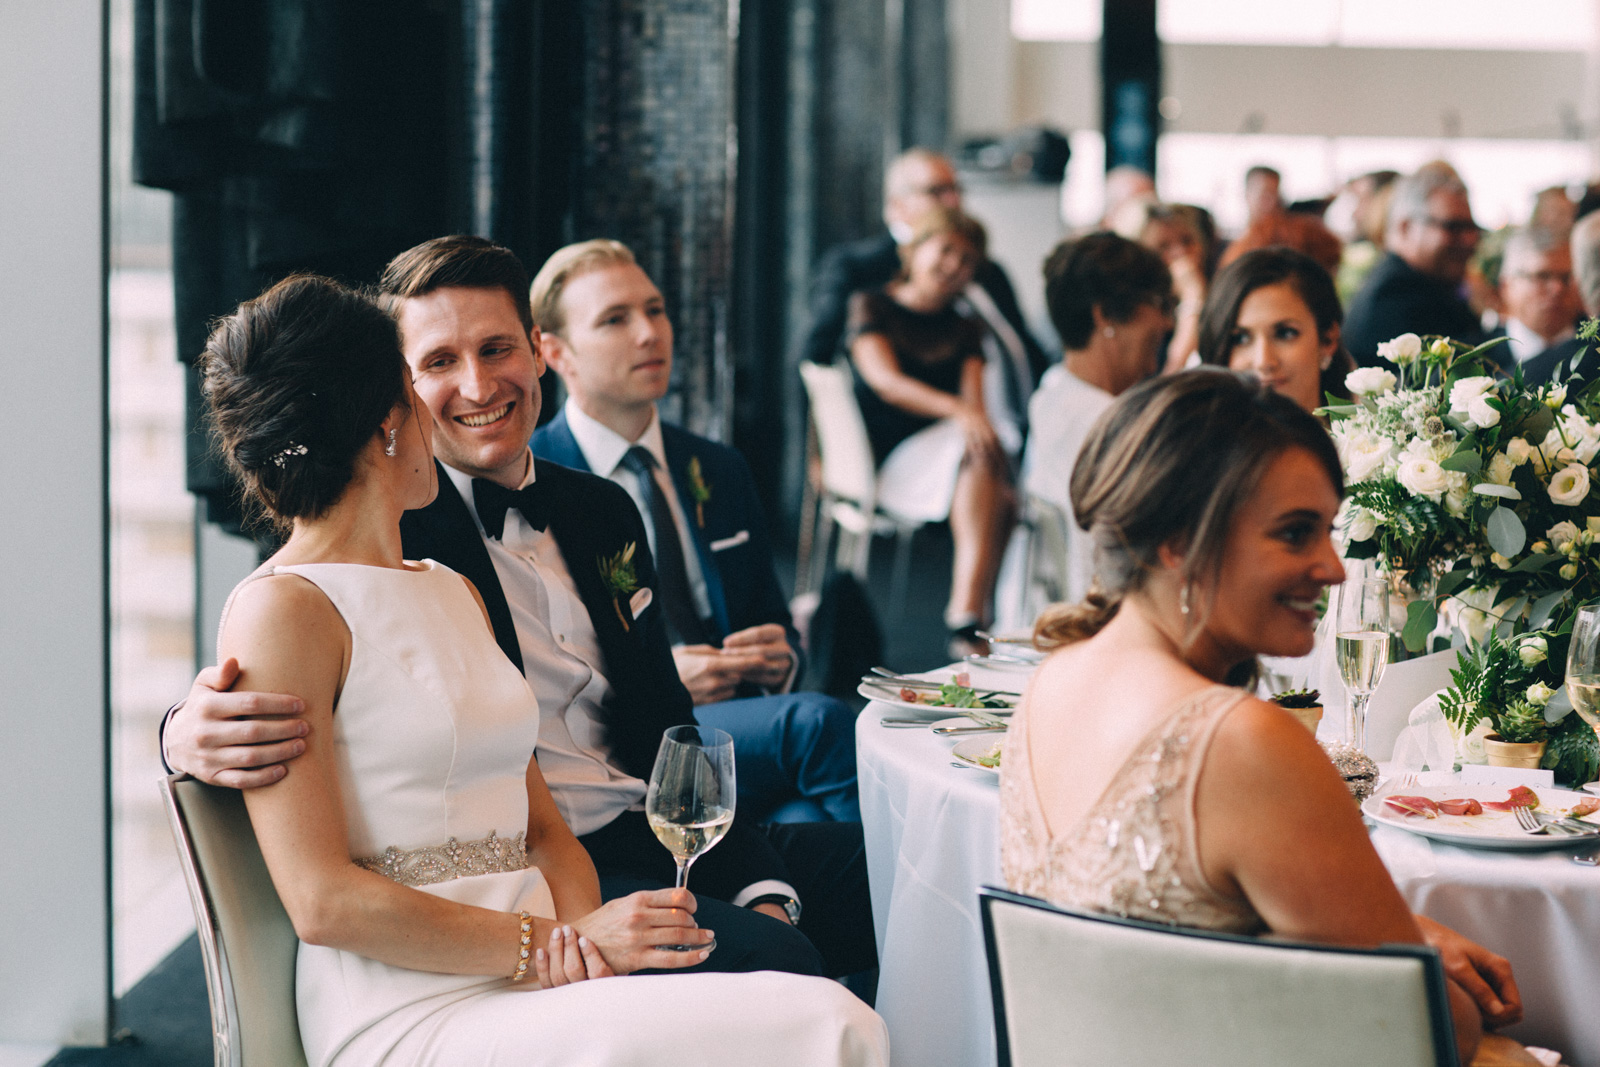 Malaparte-wedding-photography-Toronto-by-Sam-Wong-of-Visual-Cravings_68